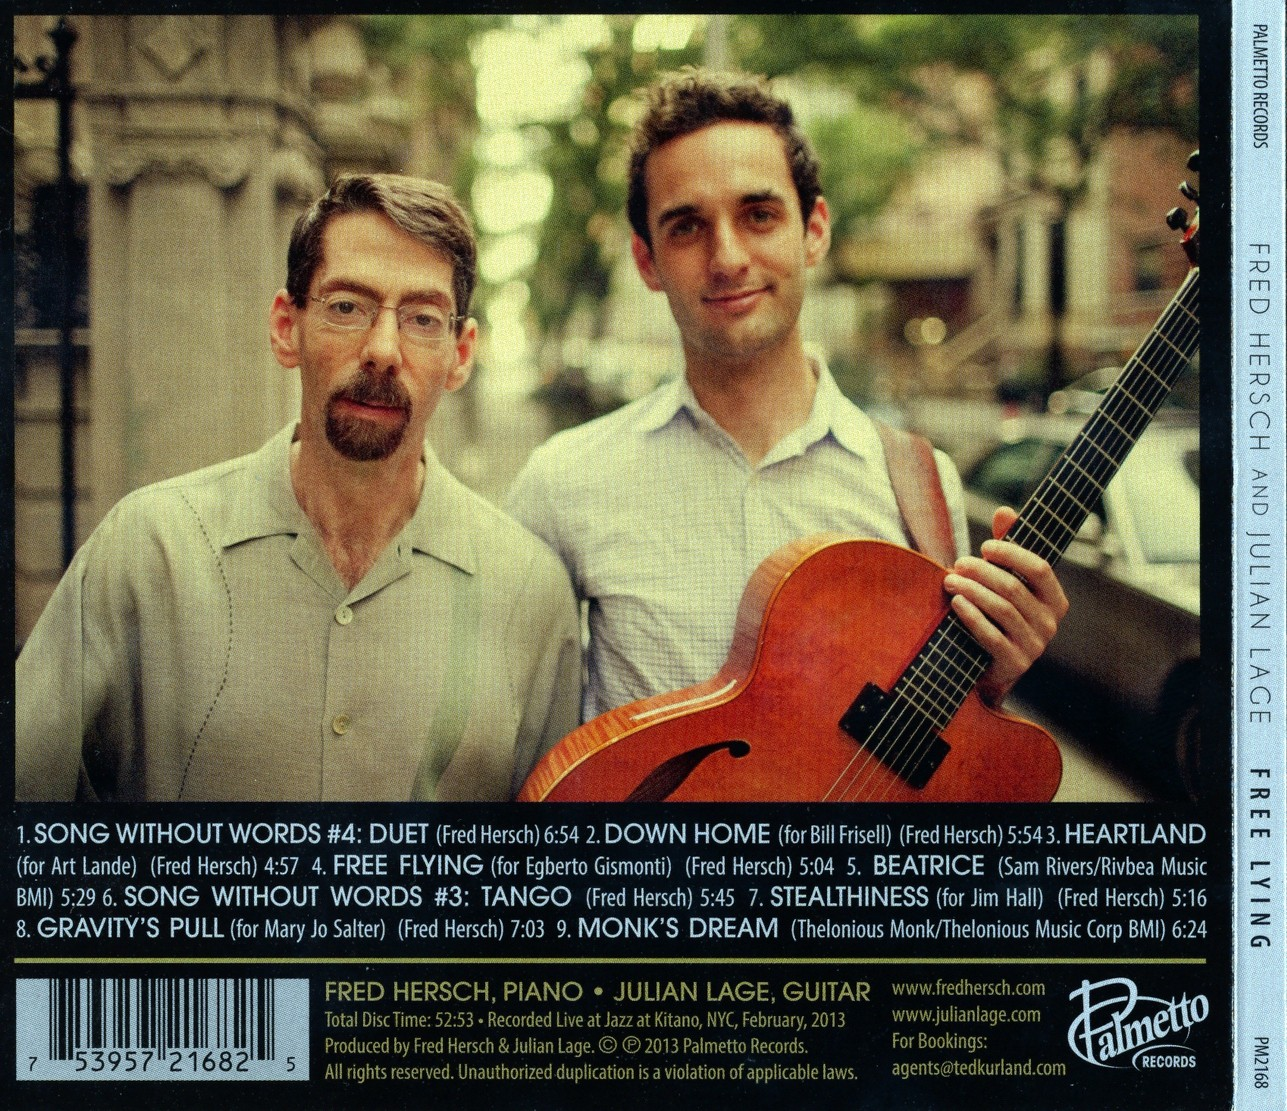 fred hersch  julian lage free flying